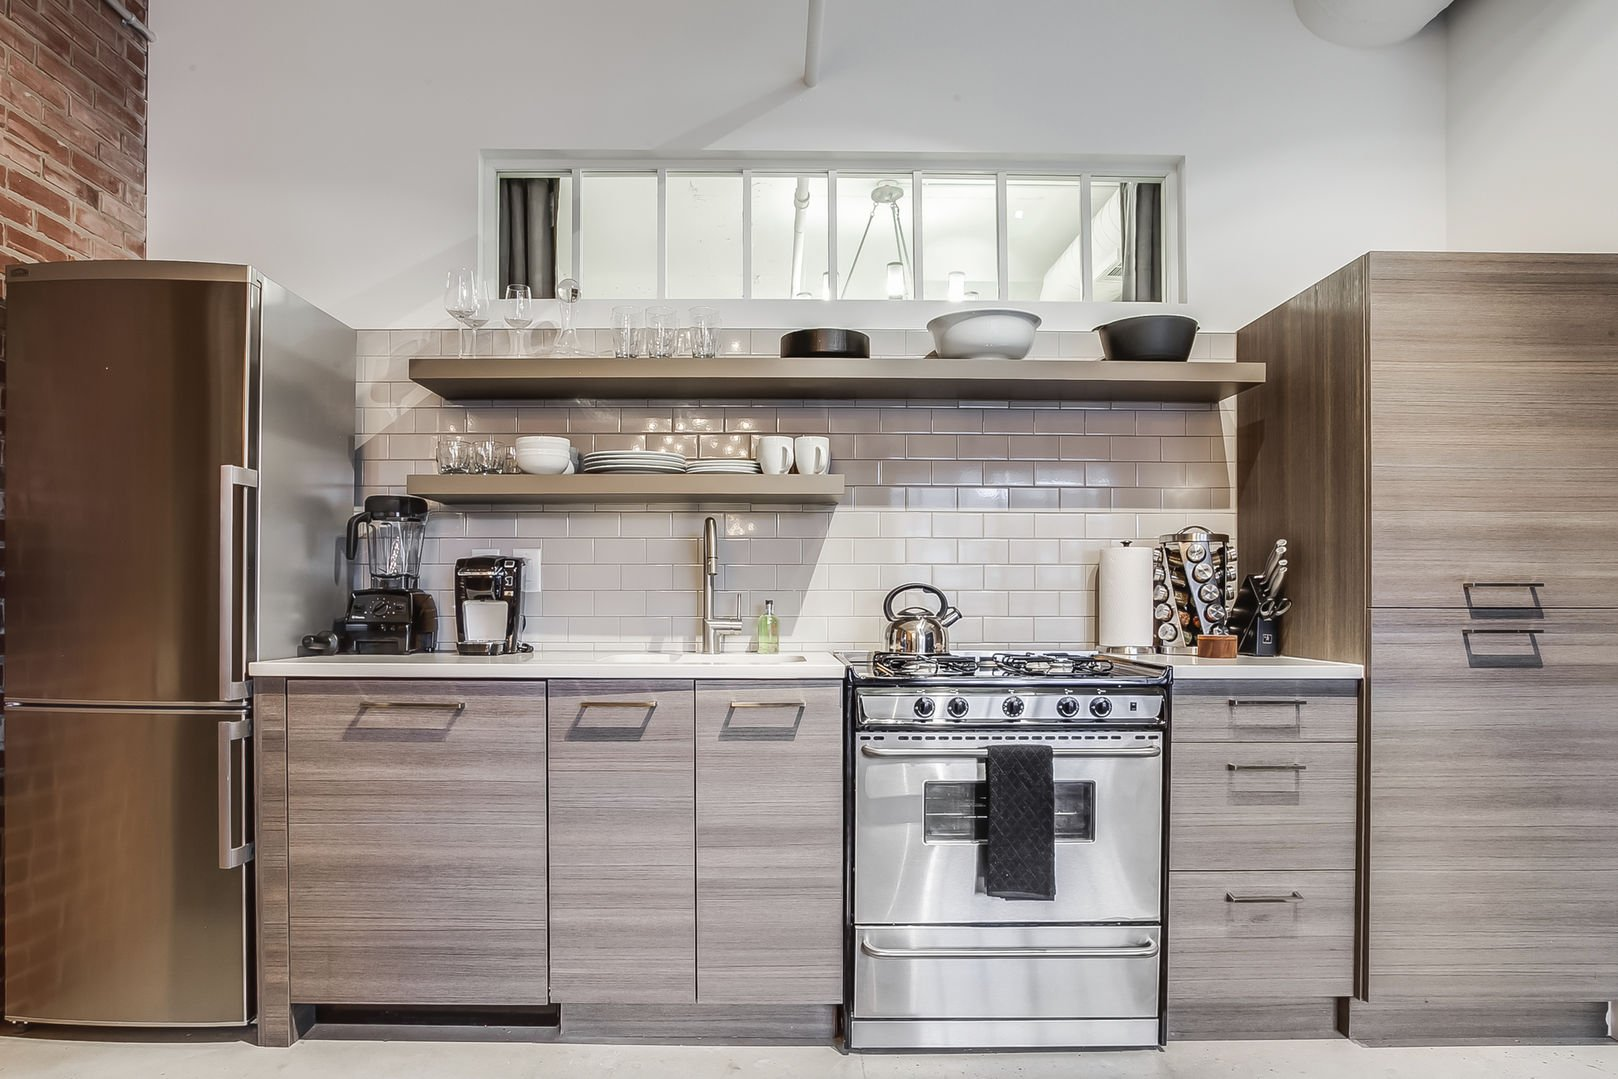 Create Meals in our Ponce City Market Apartment's Kitchen